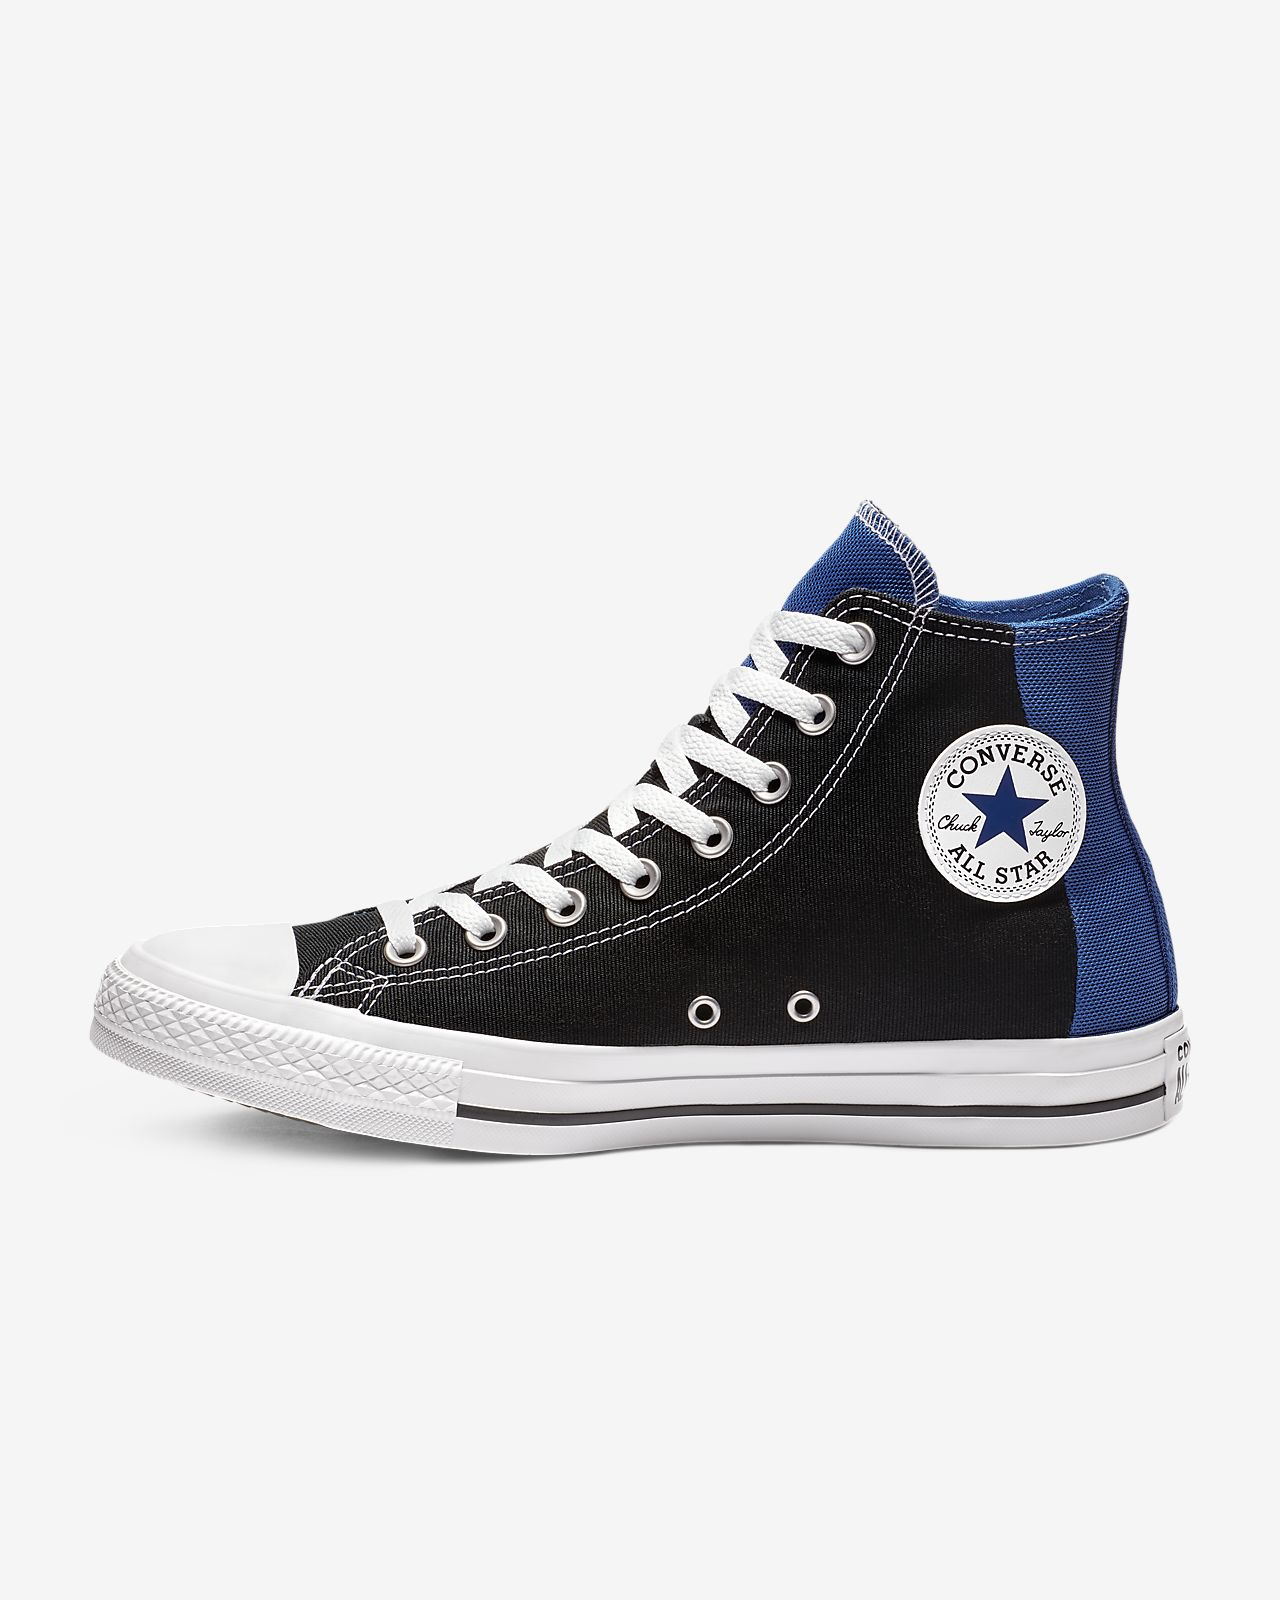 Converse Chuck Taylor All Star Unisex Shoe